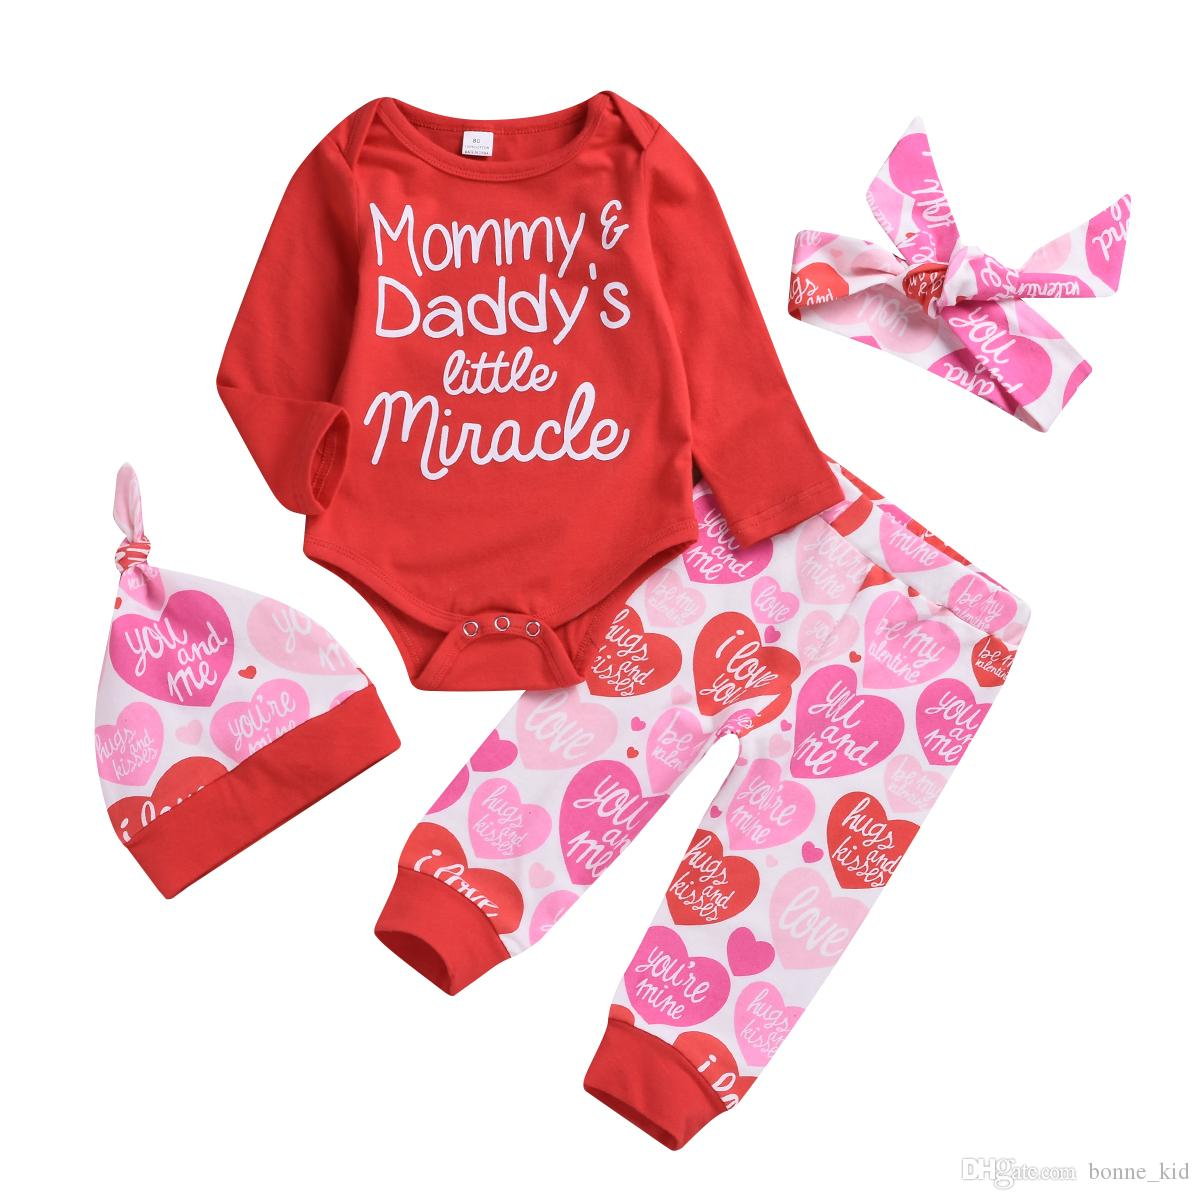 08655745507 2019 Valentine S Day Baby Girl Clothing Rompers+Pants+Hat+Headband Set  Mommy And Daddy S Little Miracle Baby Girl Outfits Clothes 0 24M From  Bonne kid